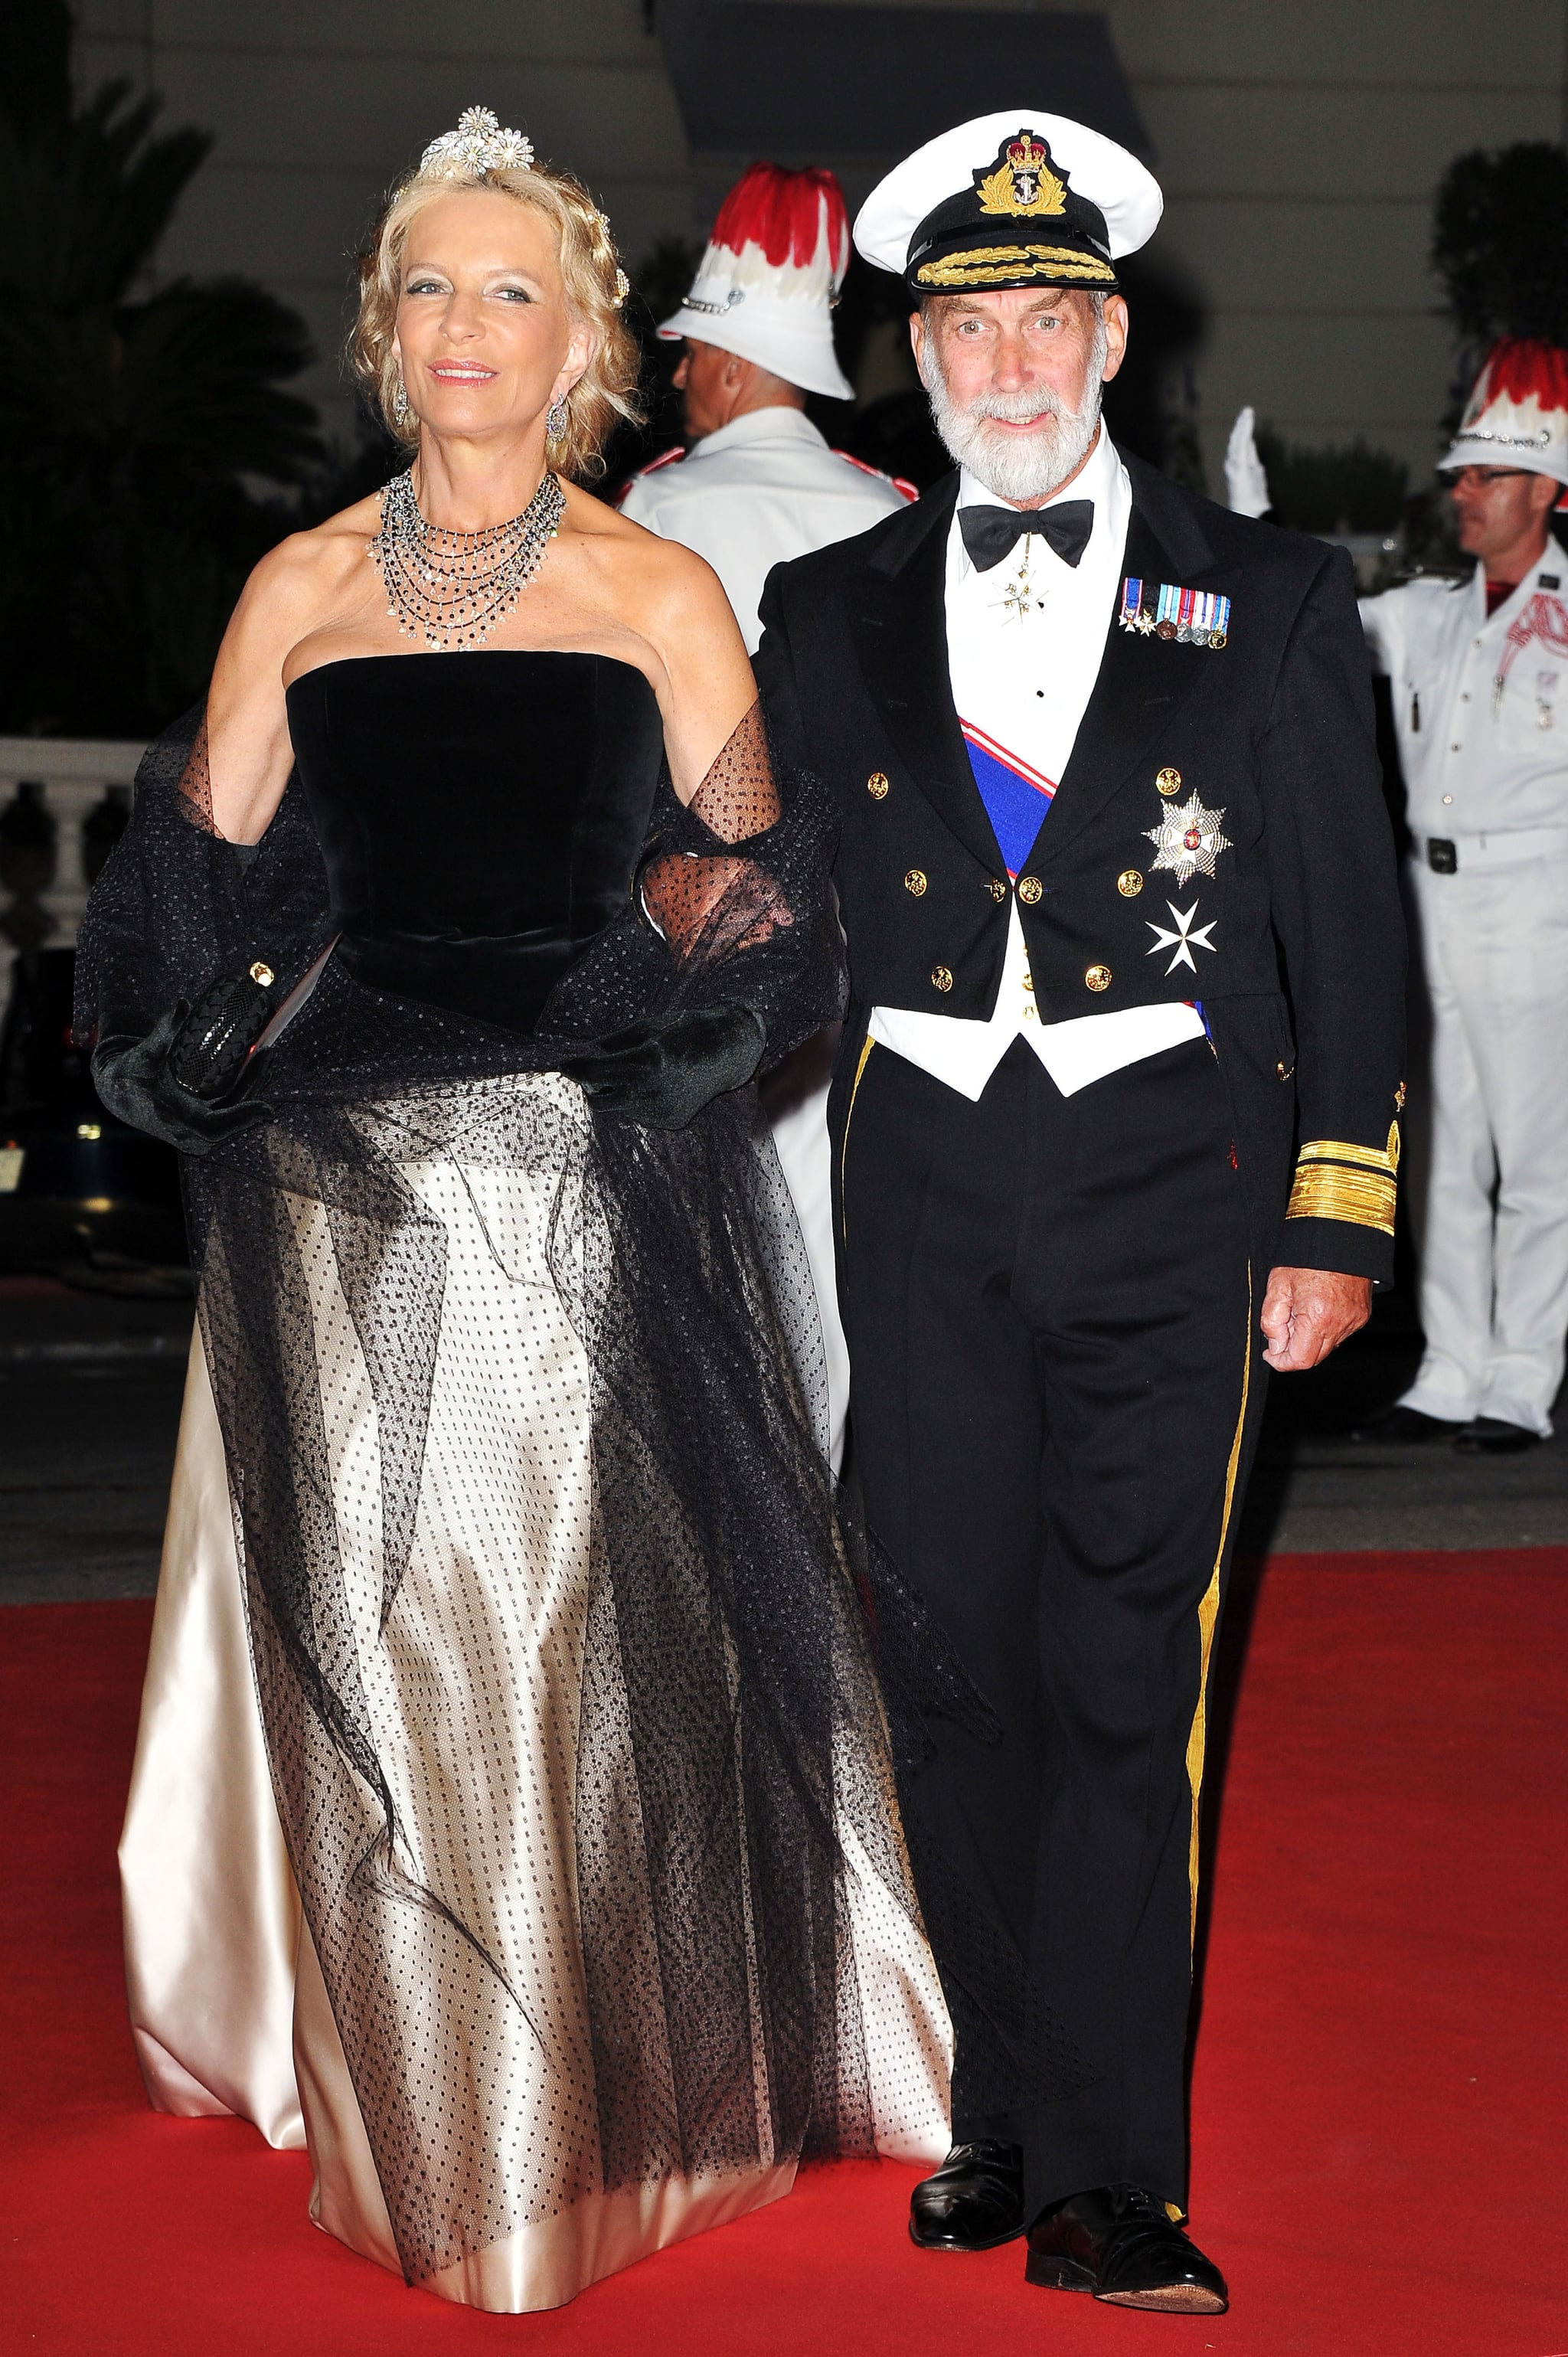 Princess and Prince Michael of Kent attended a dinner at Opera terraces after the religious wedding ceremony of Prince Albert II of Monaco and Princess Charlene of Monaco.